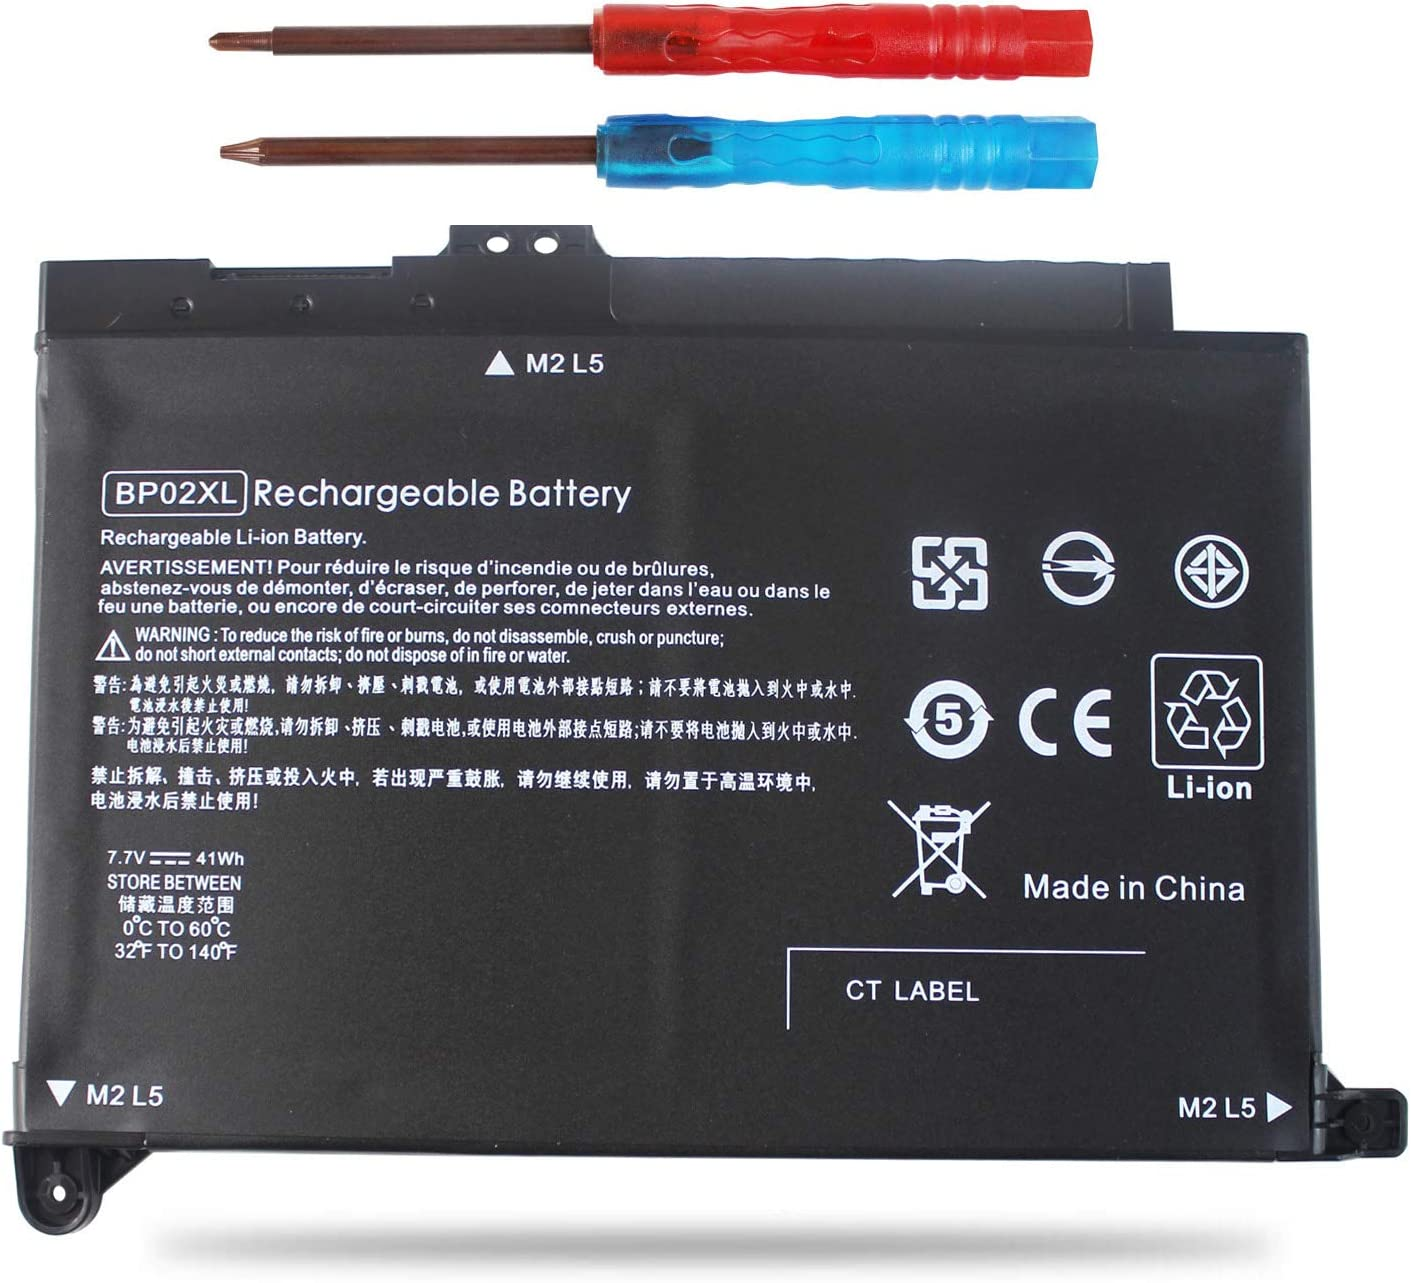 Easy&Fine BP02XL Replacement Laptop Battery for HP Pavilion PC 15 15-AW000 15-AU000 15-AU010WM 15-AU018WM Series HSTNN-UB7B HSTNN-LB7H BP02041XL 849569-421 849569-541 849569-542